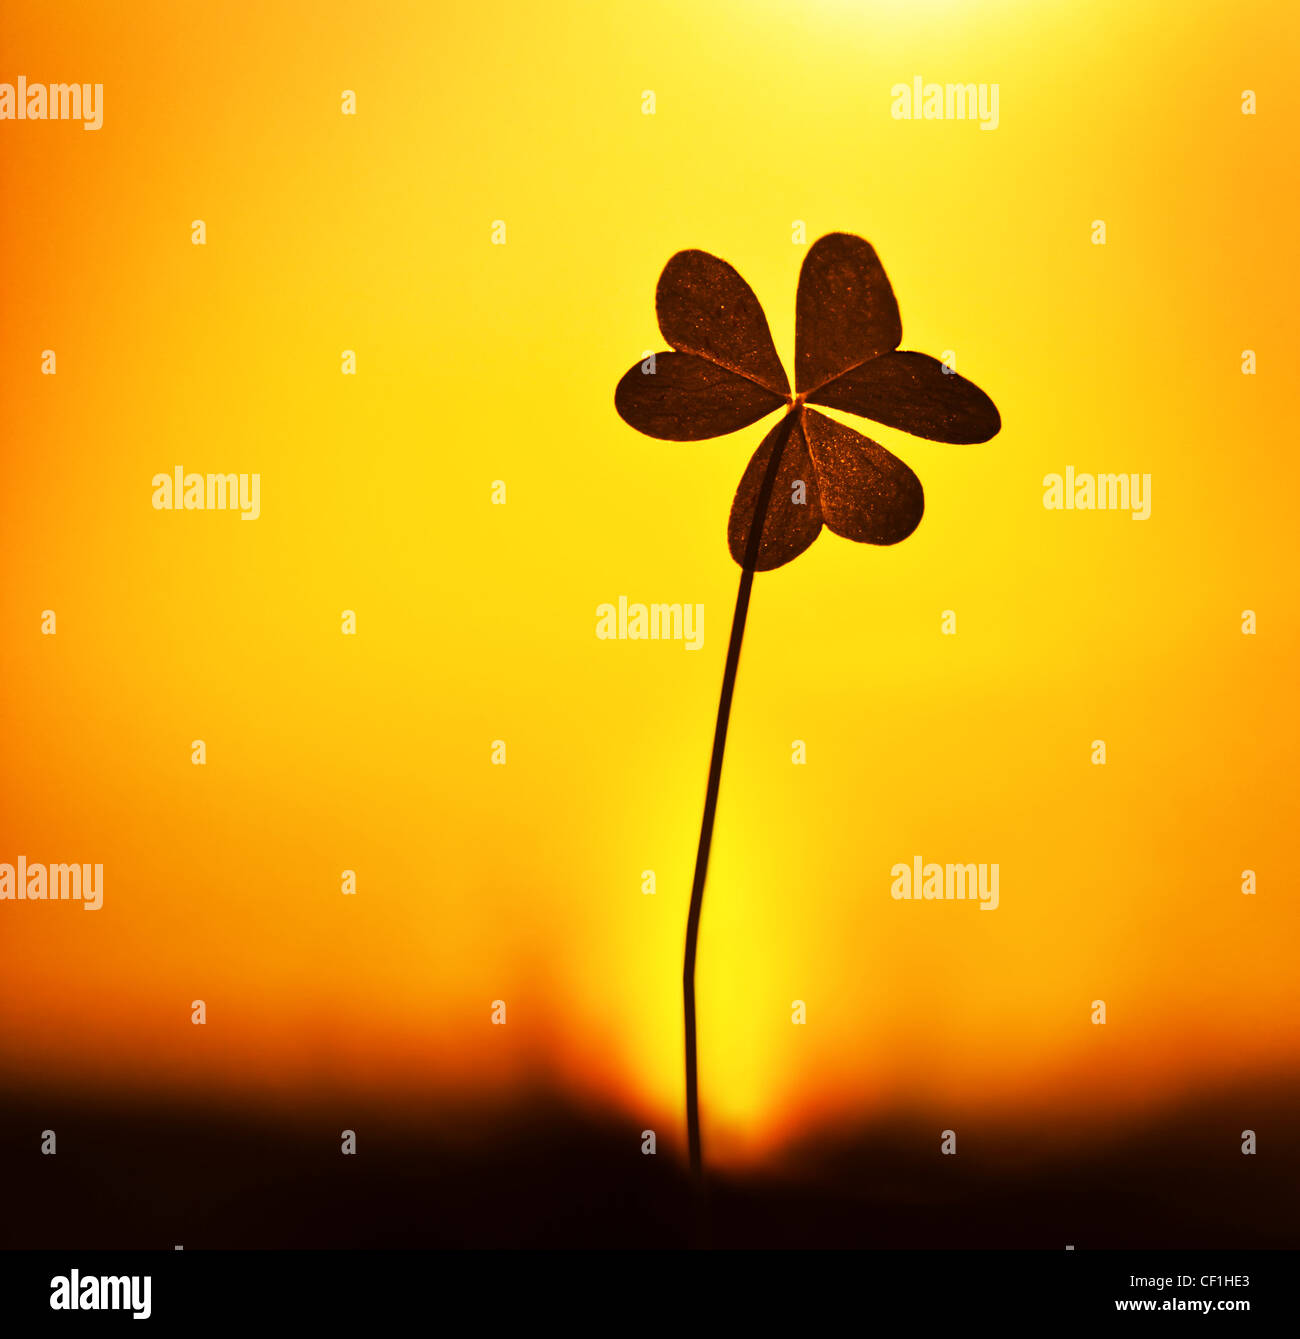 Clover at sunset, silhouette of shamrock plant over warm yellow sky background, abstract floral image, spring nature - Stock Image